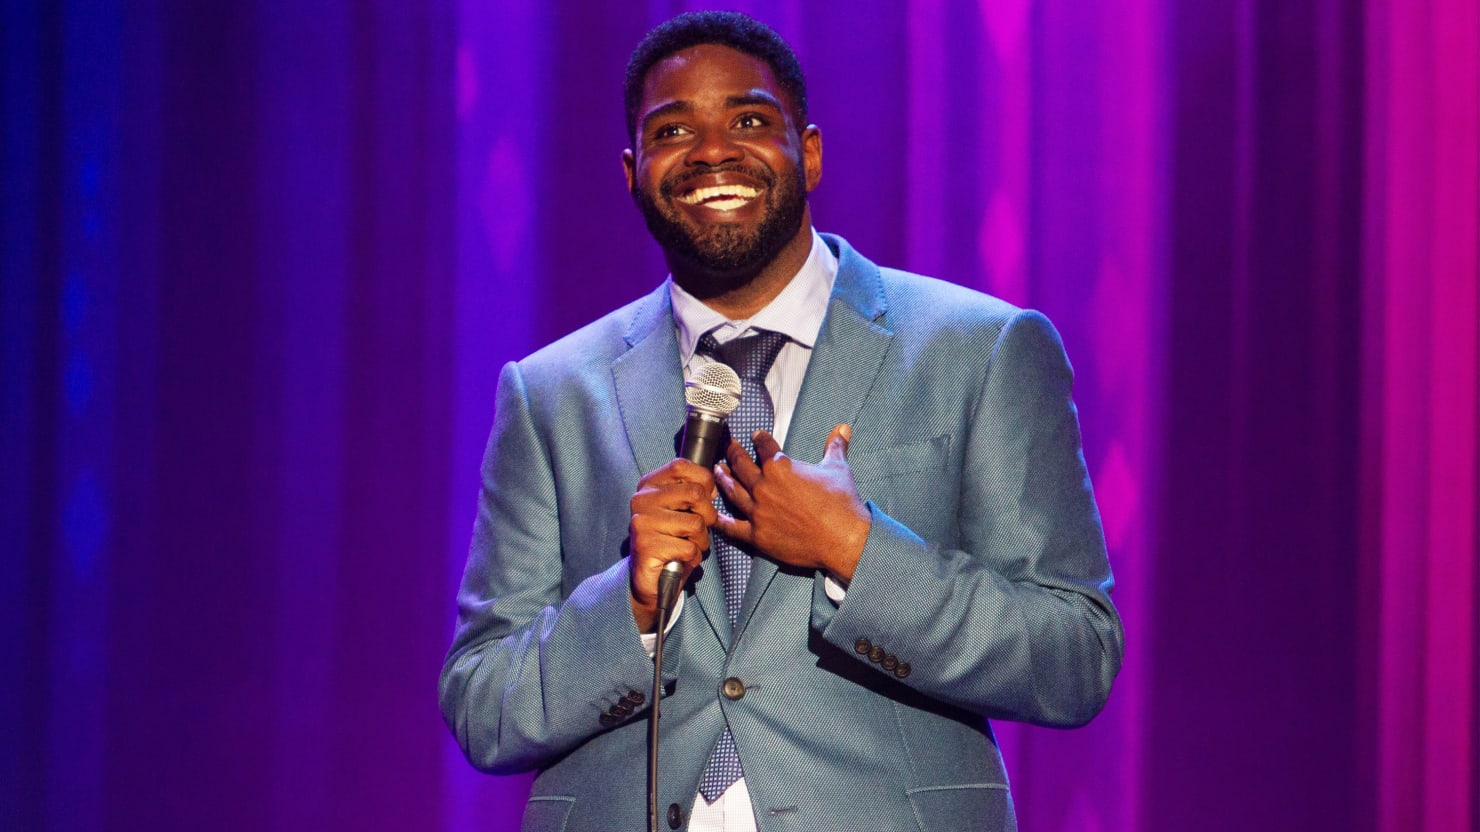 World Tech Auto >> Ron Funches Turned Down Netflix for Comedy Central: You